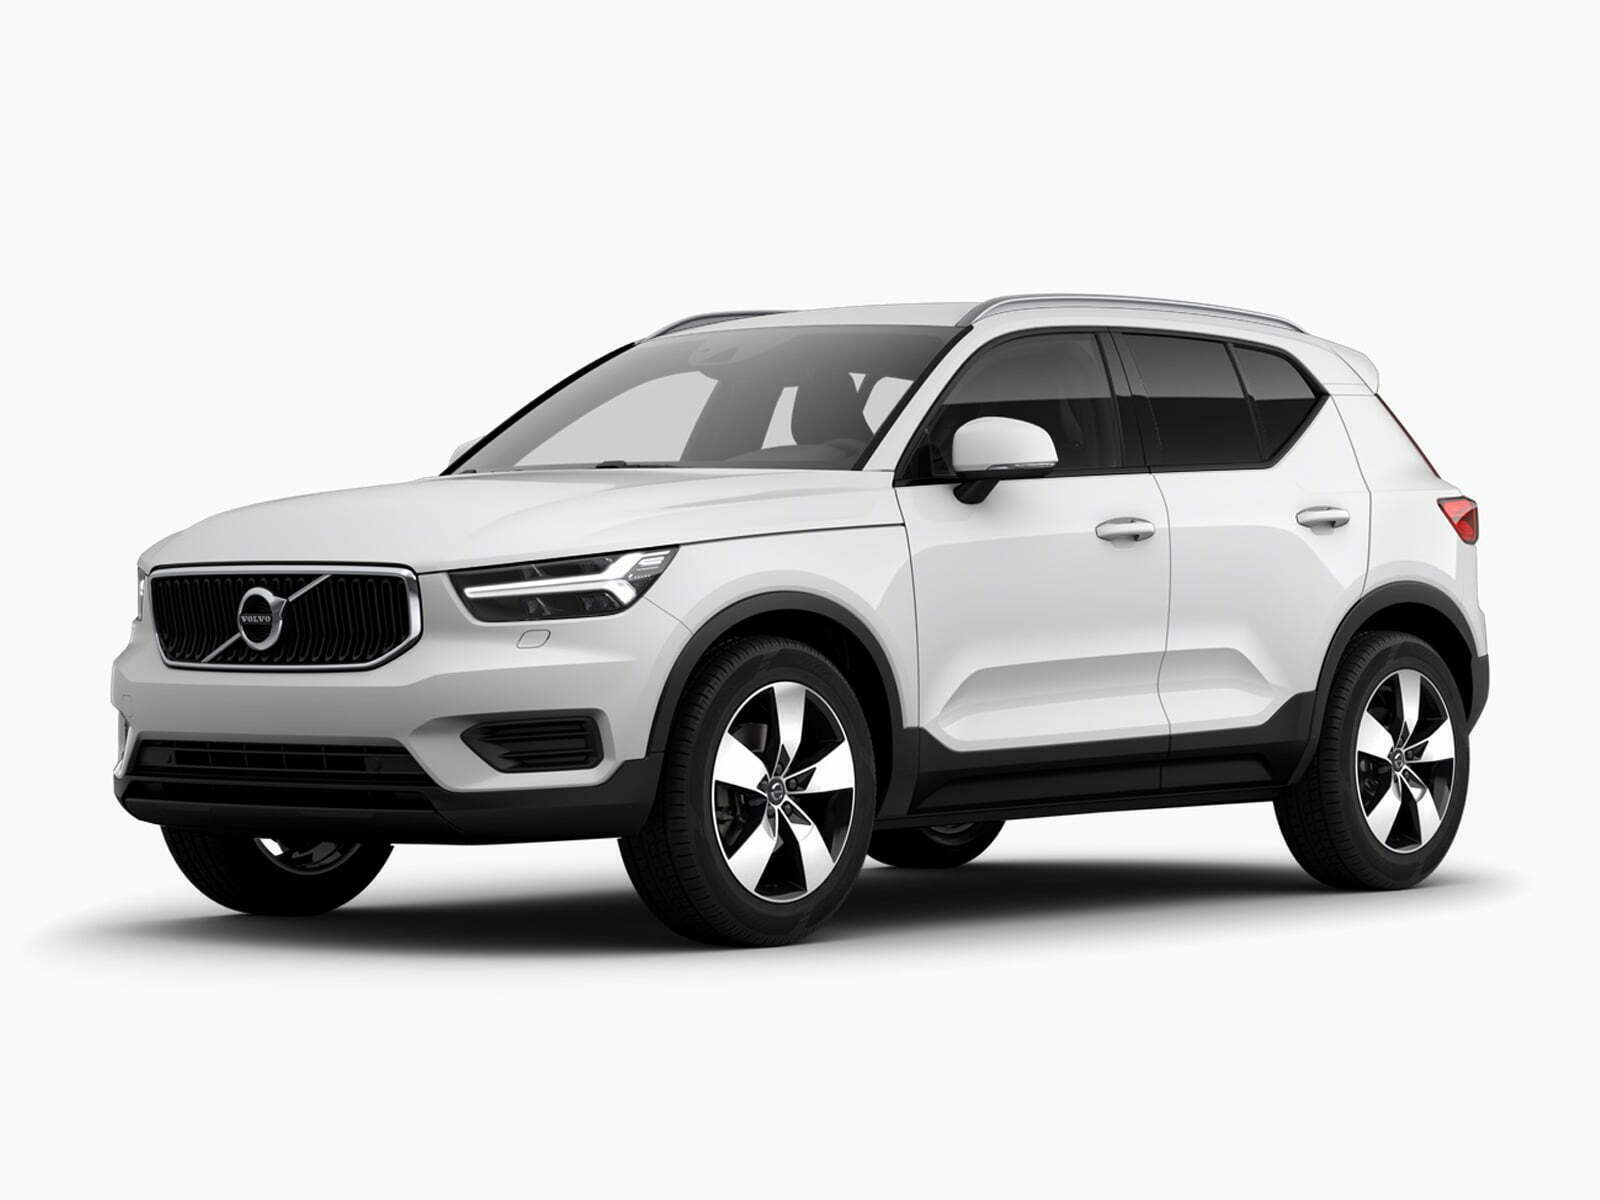 de nieuwe volvo xc40 leasen nu extra voordelig bij leaseroute. Black Bedroom Furniture Sets. Home Design Ideas